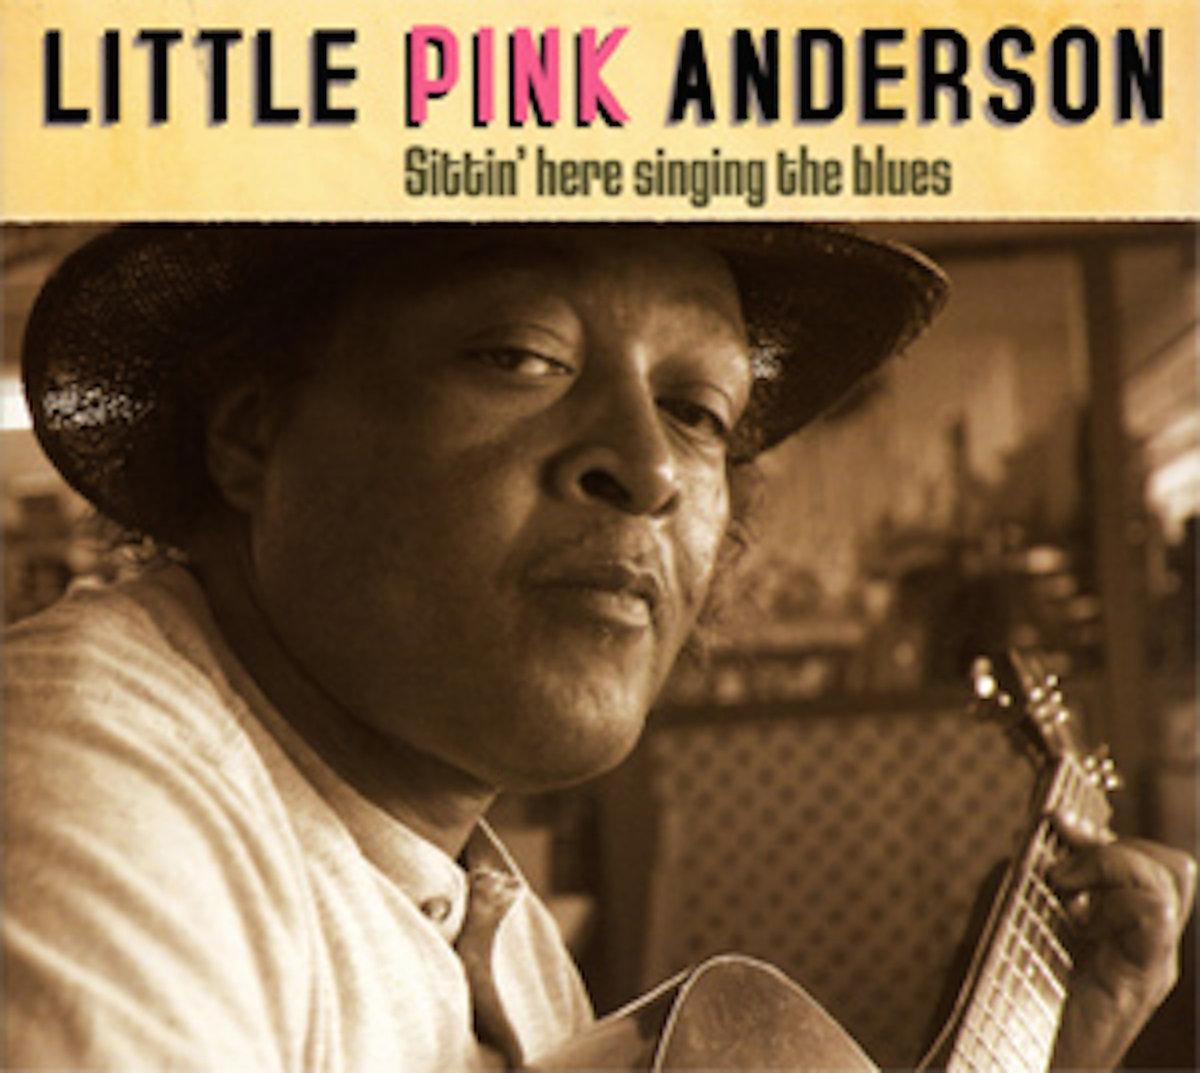 Little Pink Anderson Album Cover